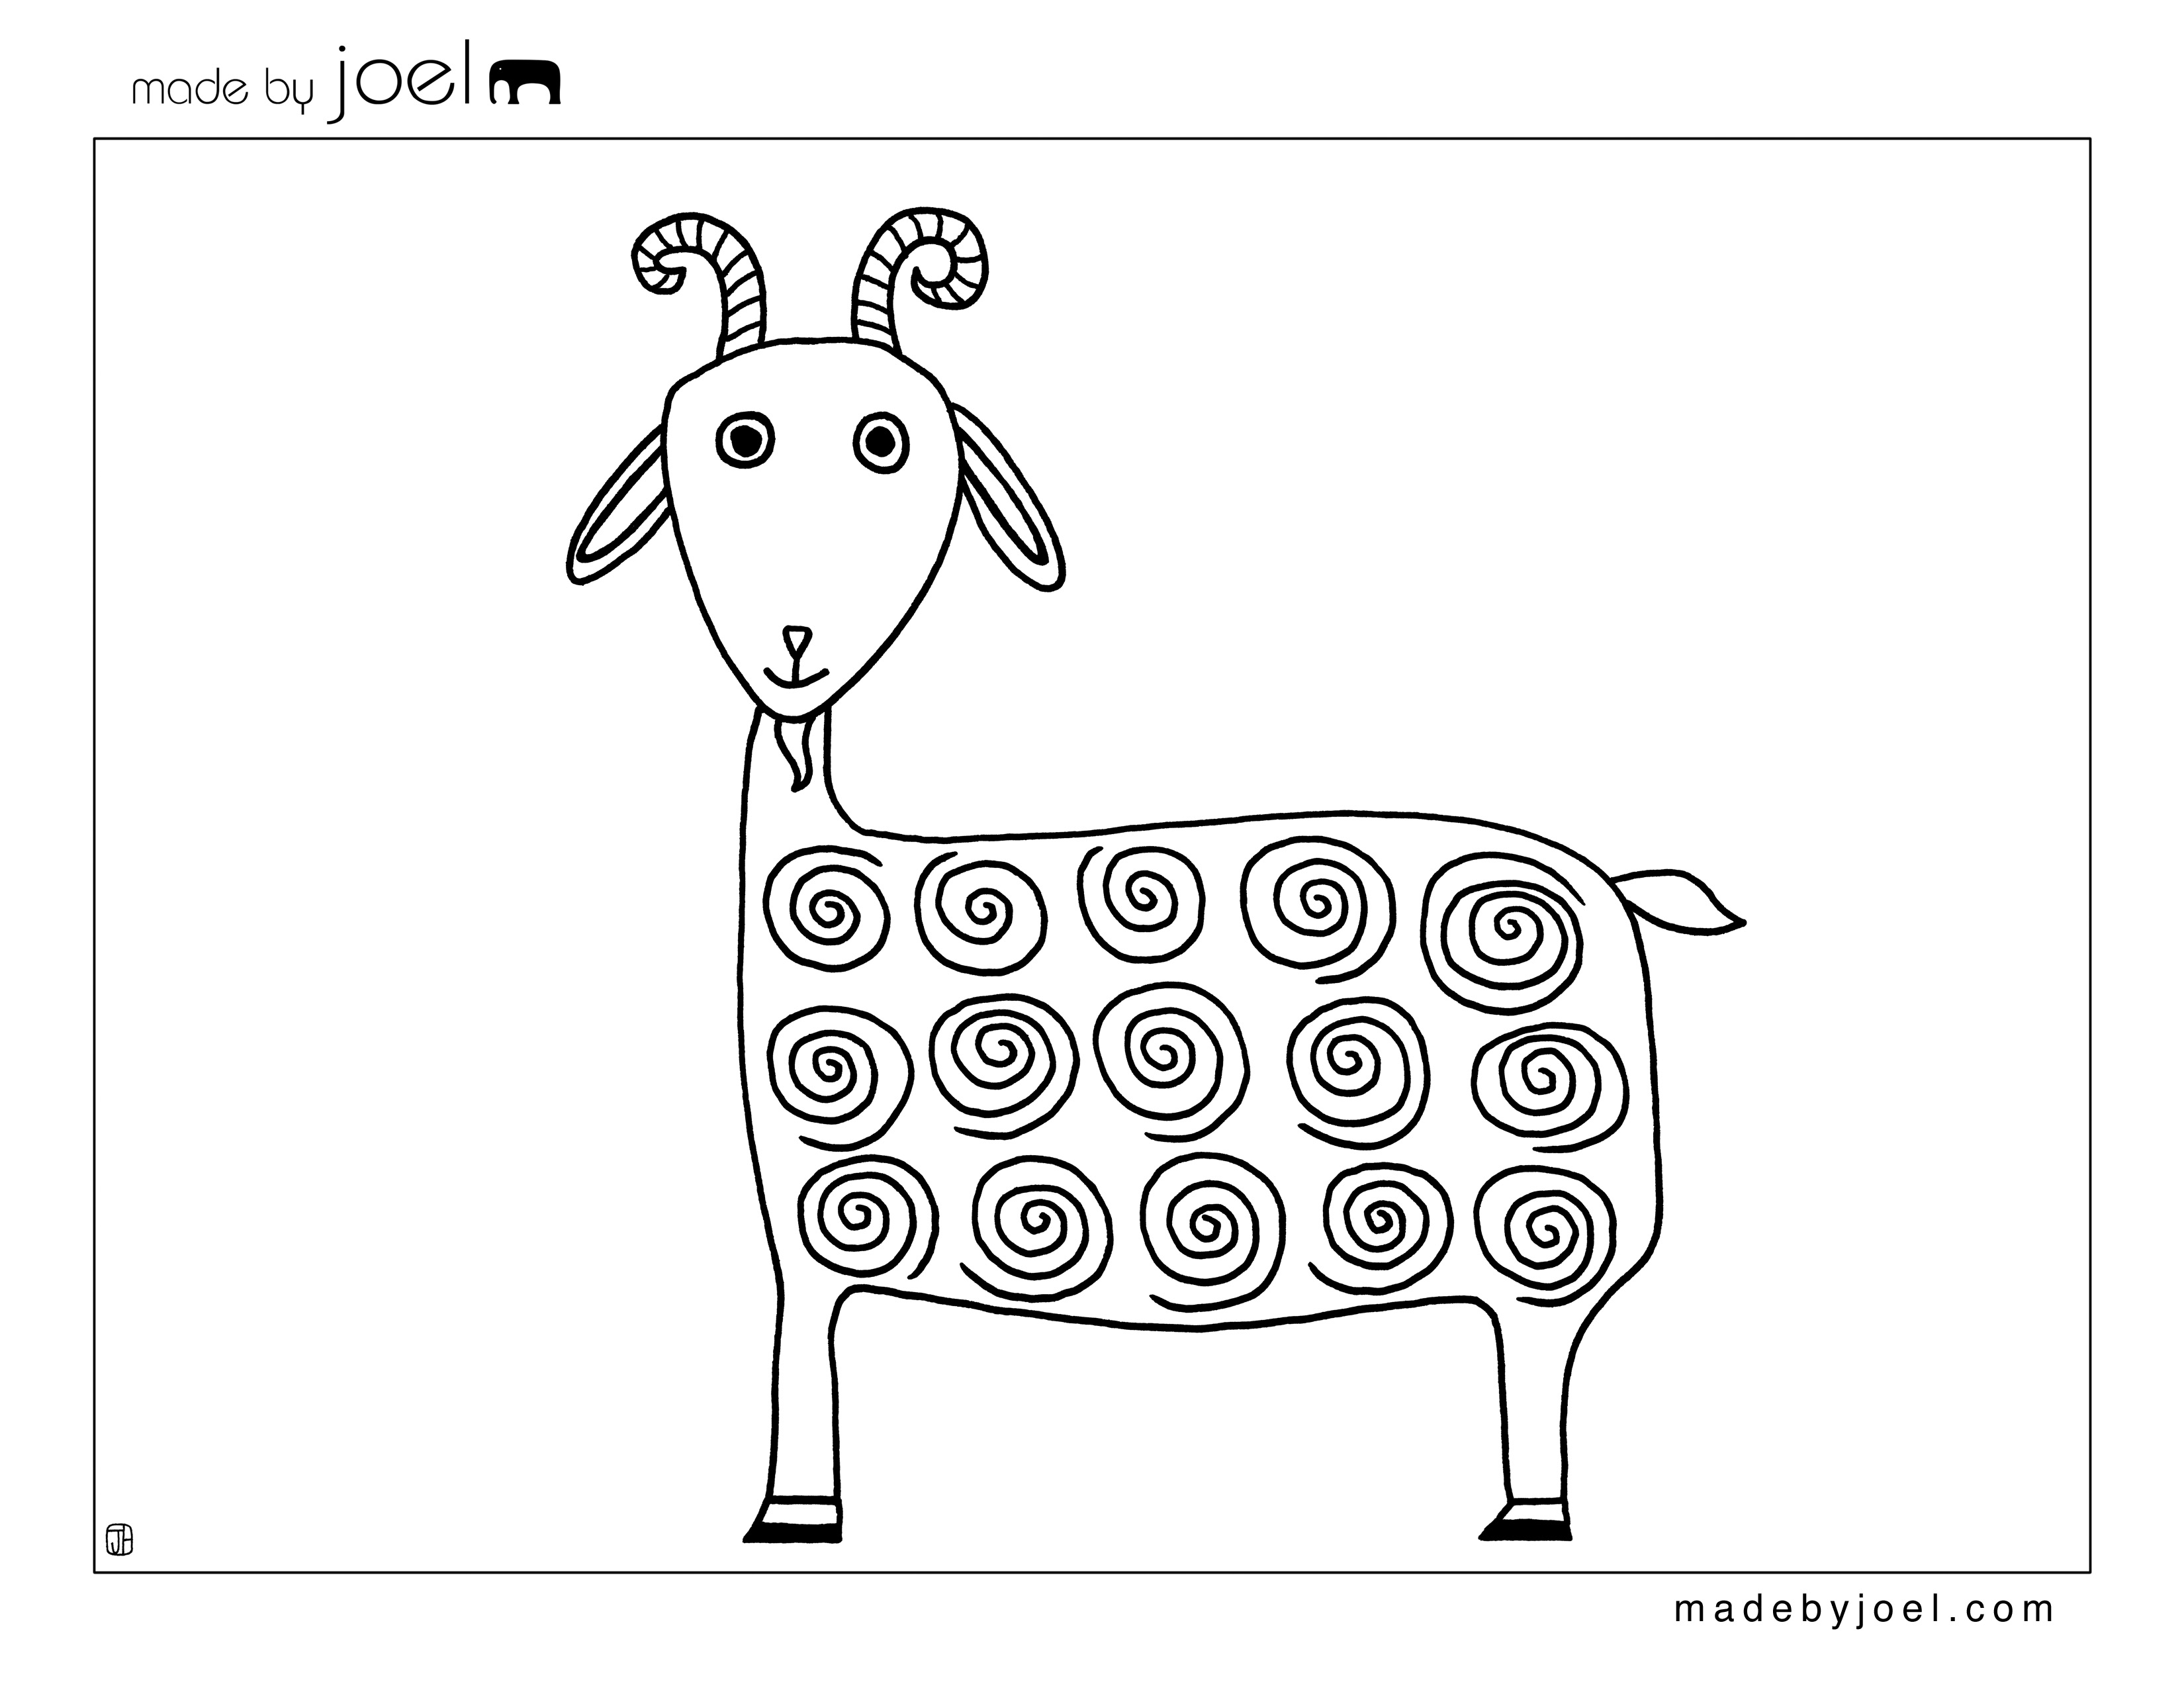 Goat Coloring Sheet Made By Joel